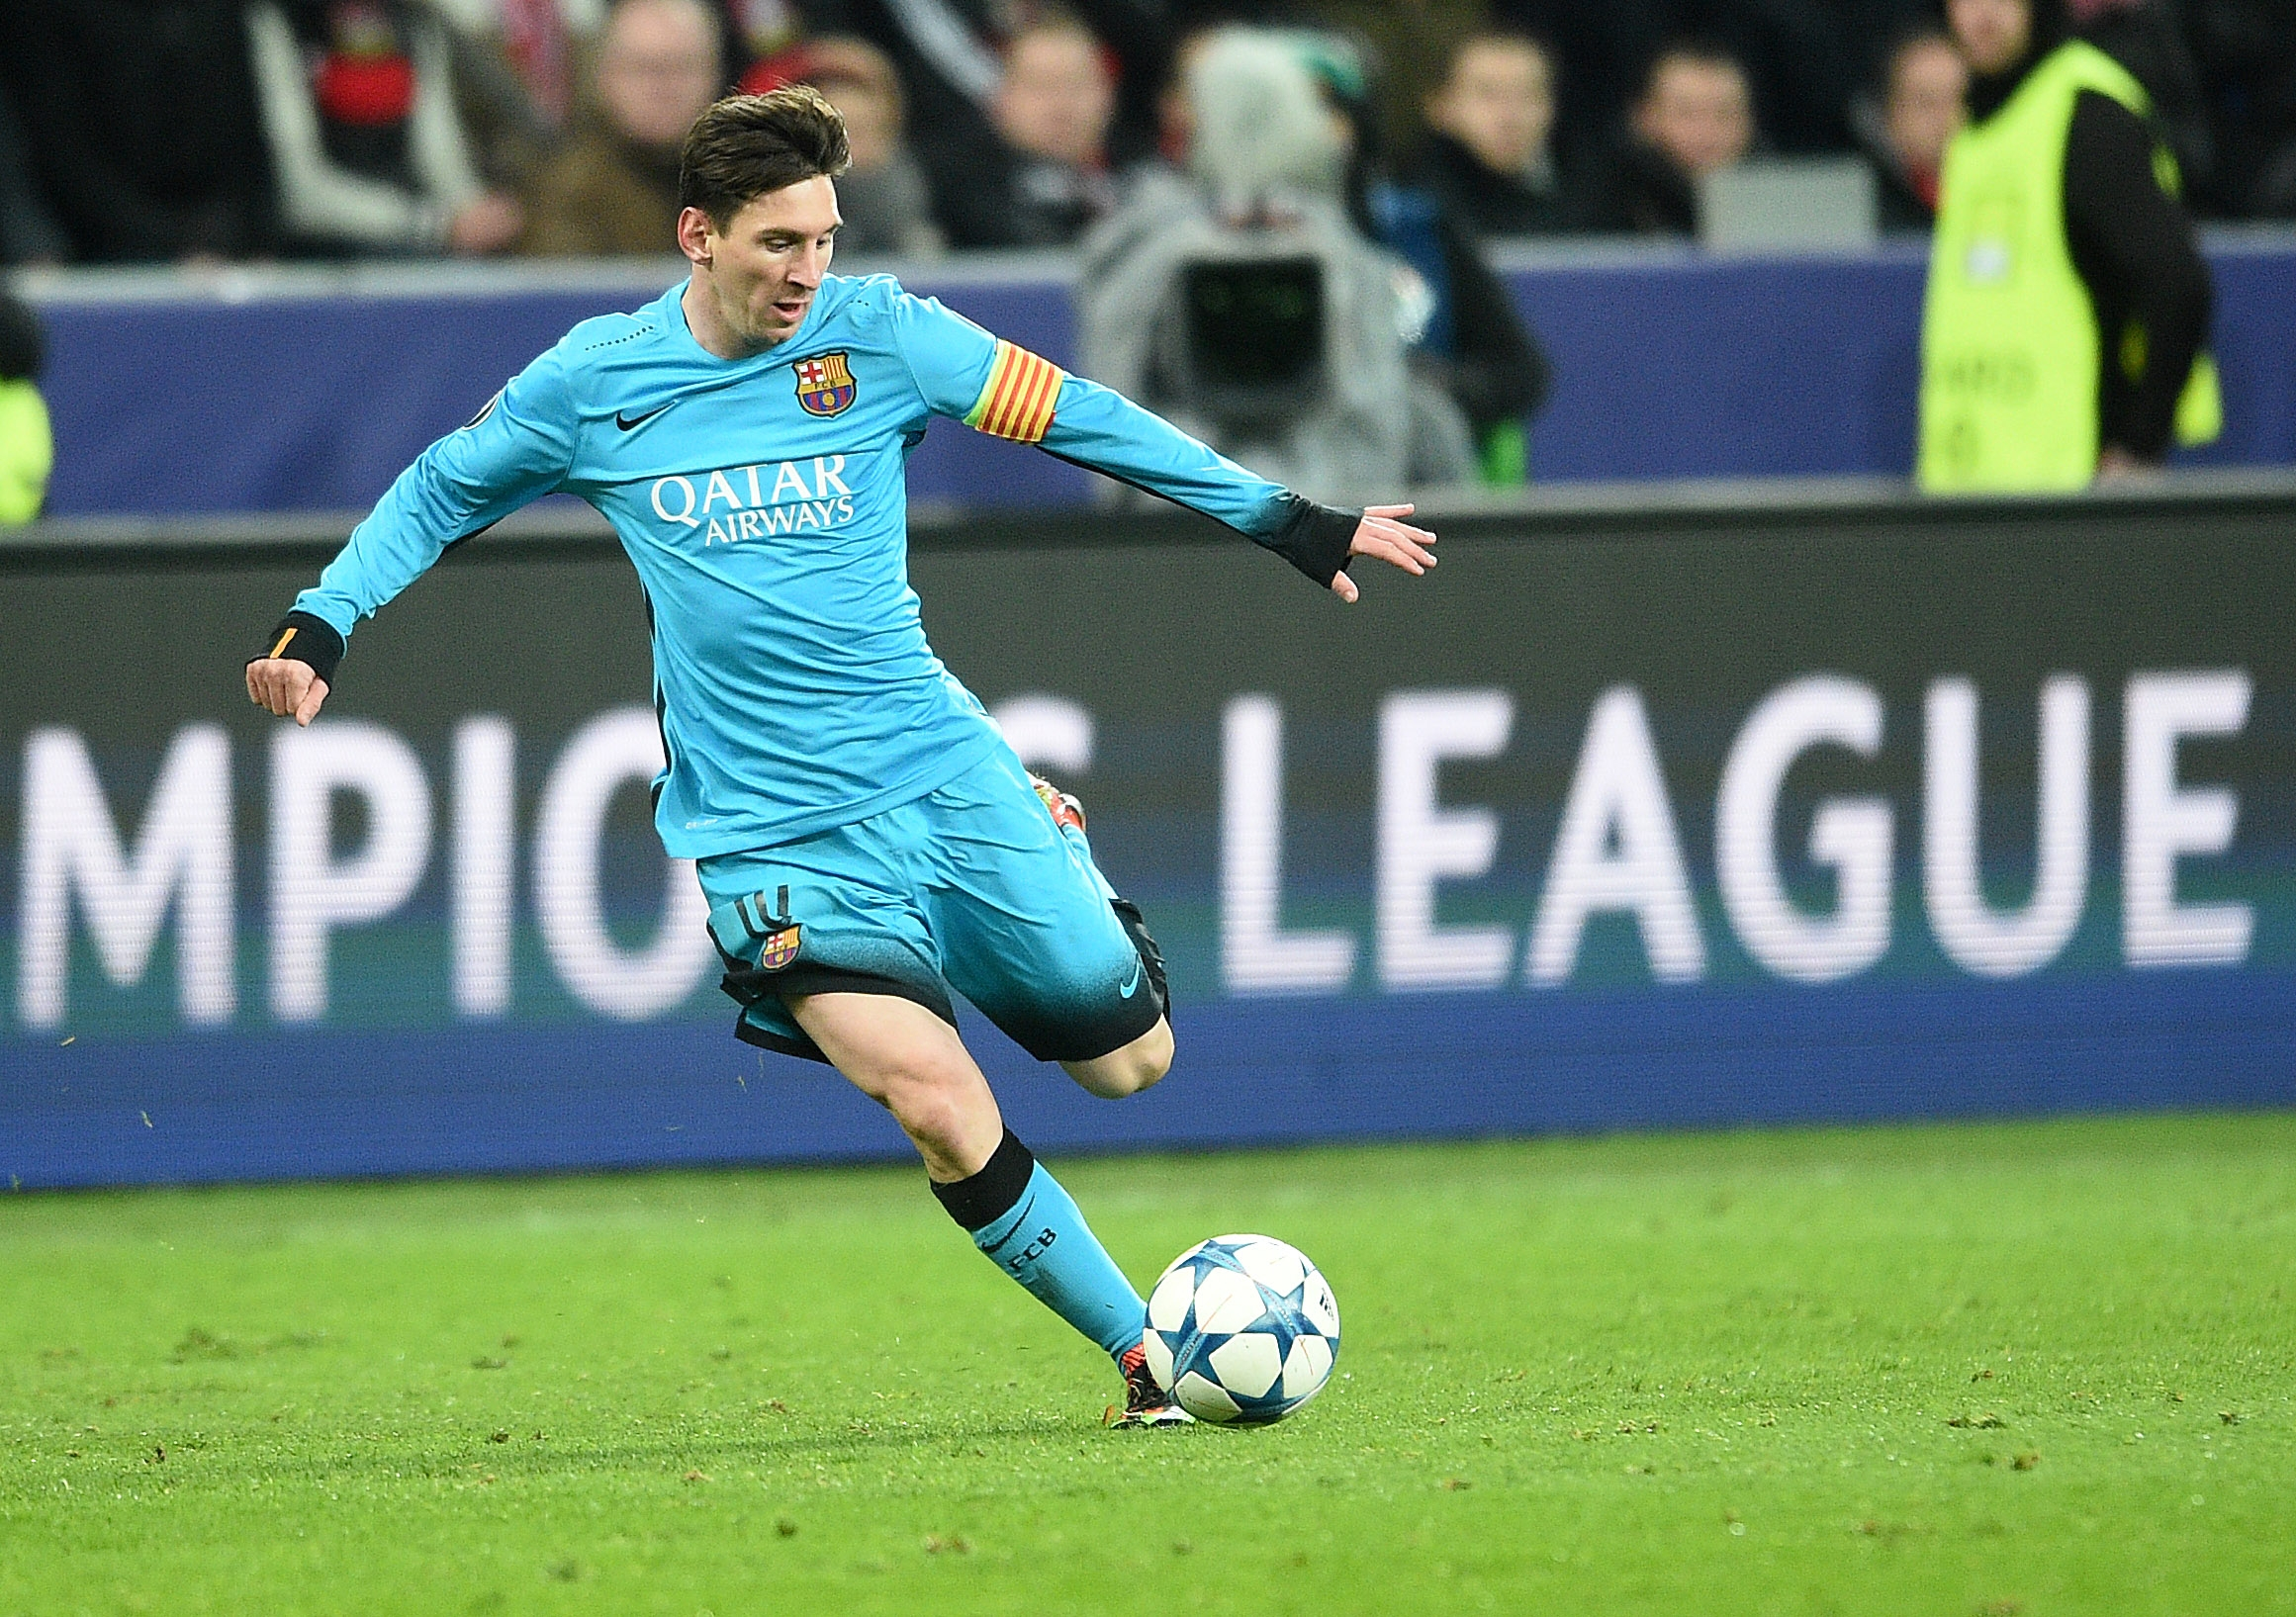 Barcelona's Lionel Messi kicks the ball during the Champions League Group E soccer match between Bayer Leverkusen and FC Barcelona in Leverkusen, western Germany, Wednesday, Dec. 9, 2015. Photo: AP